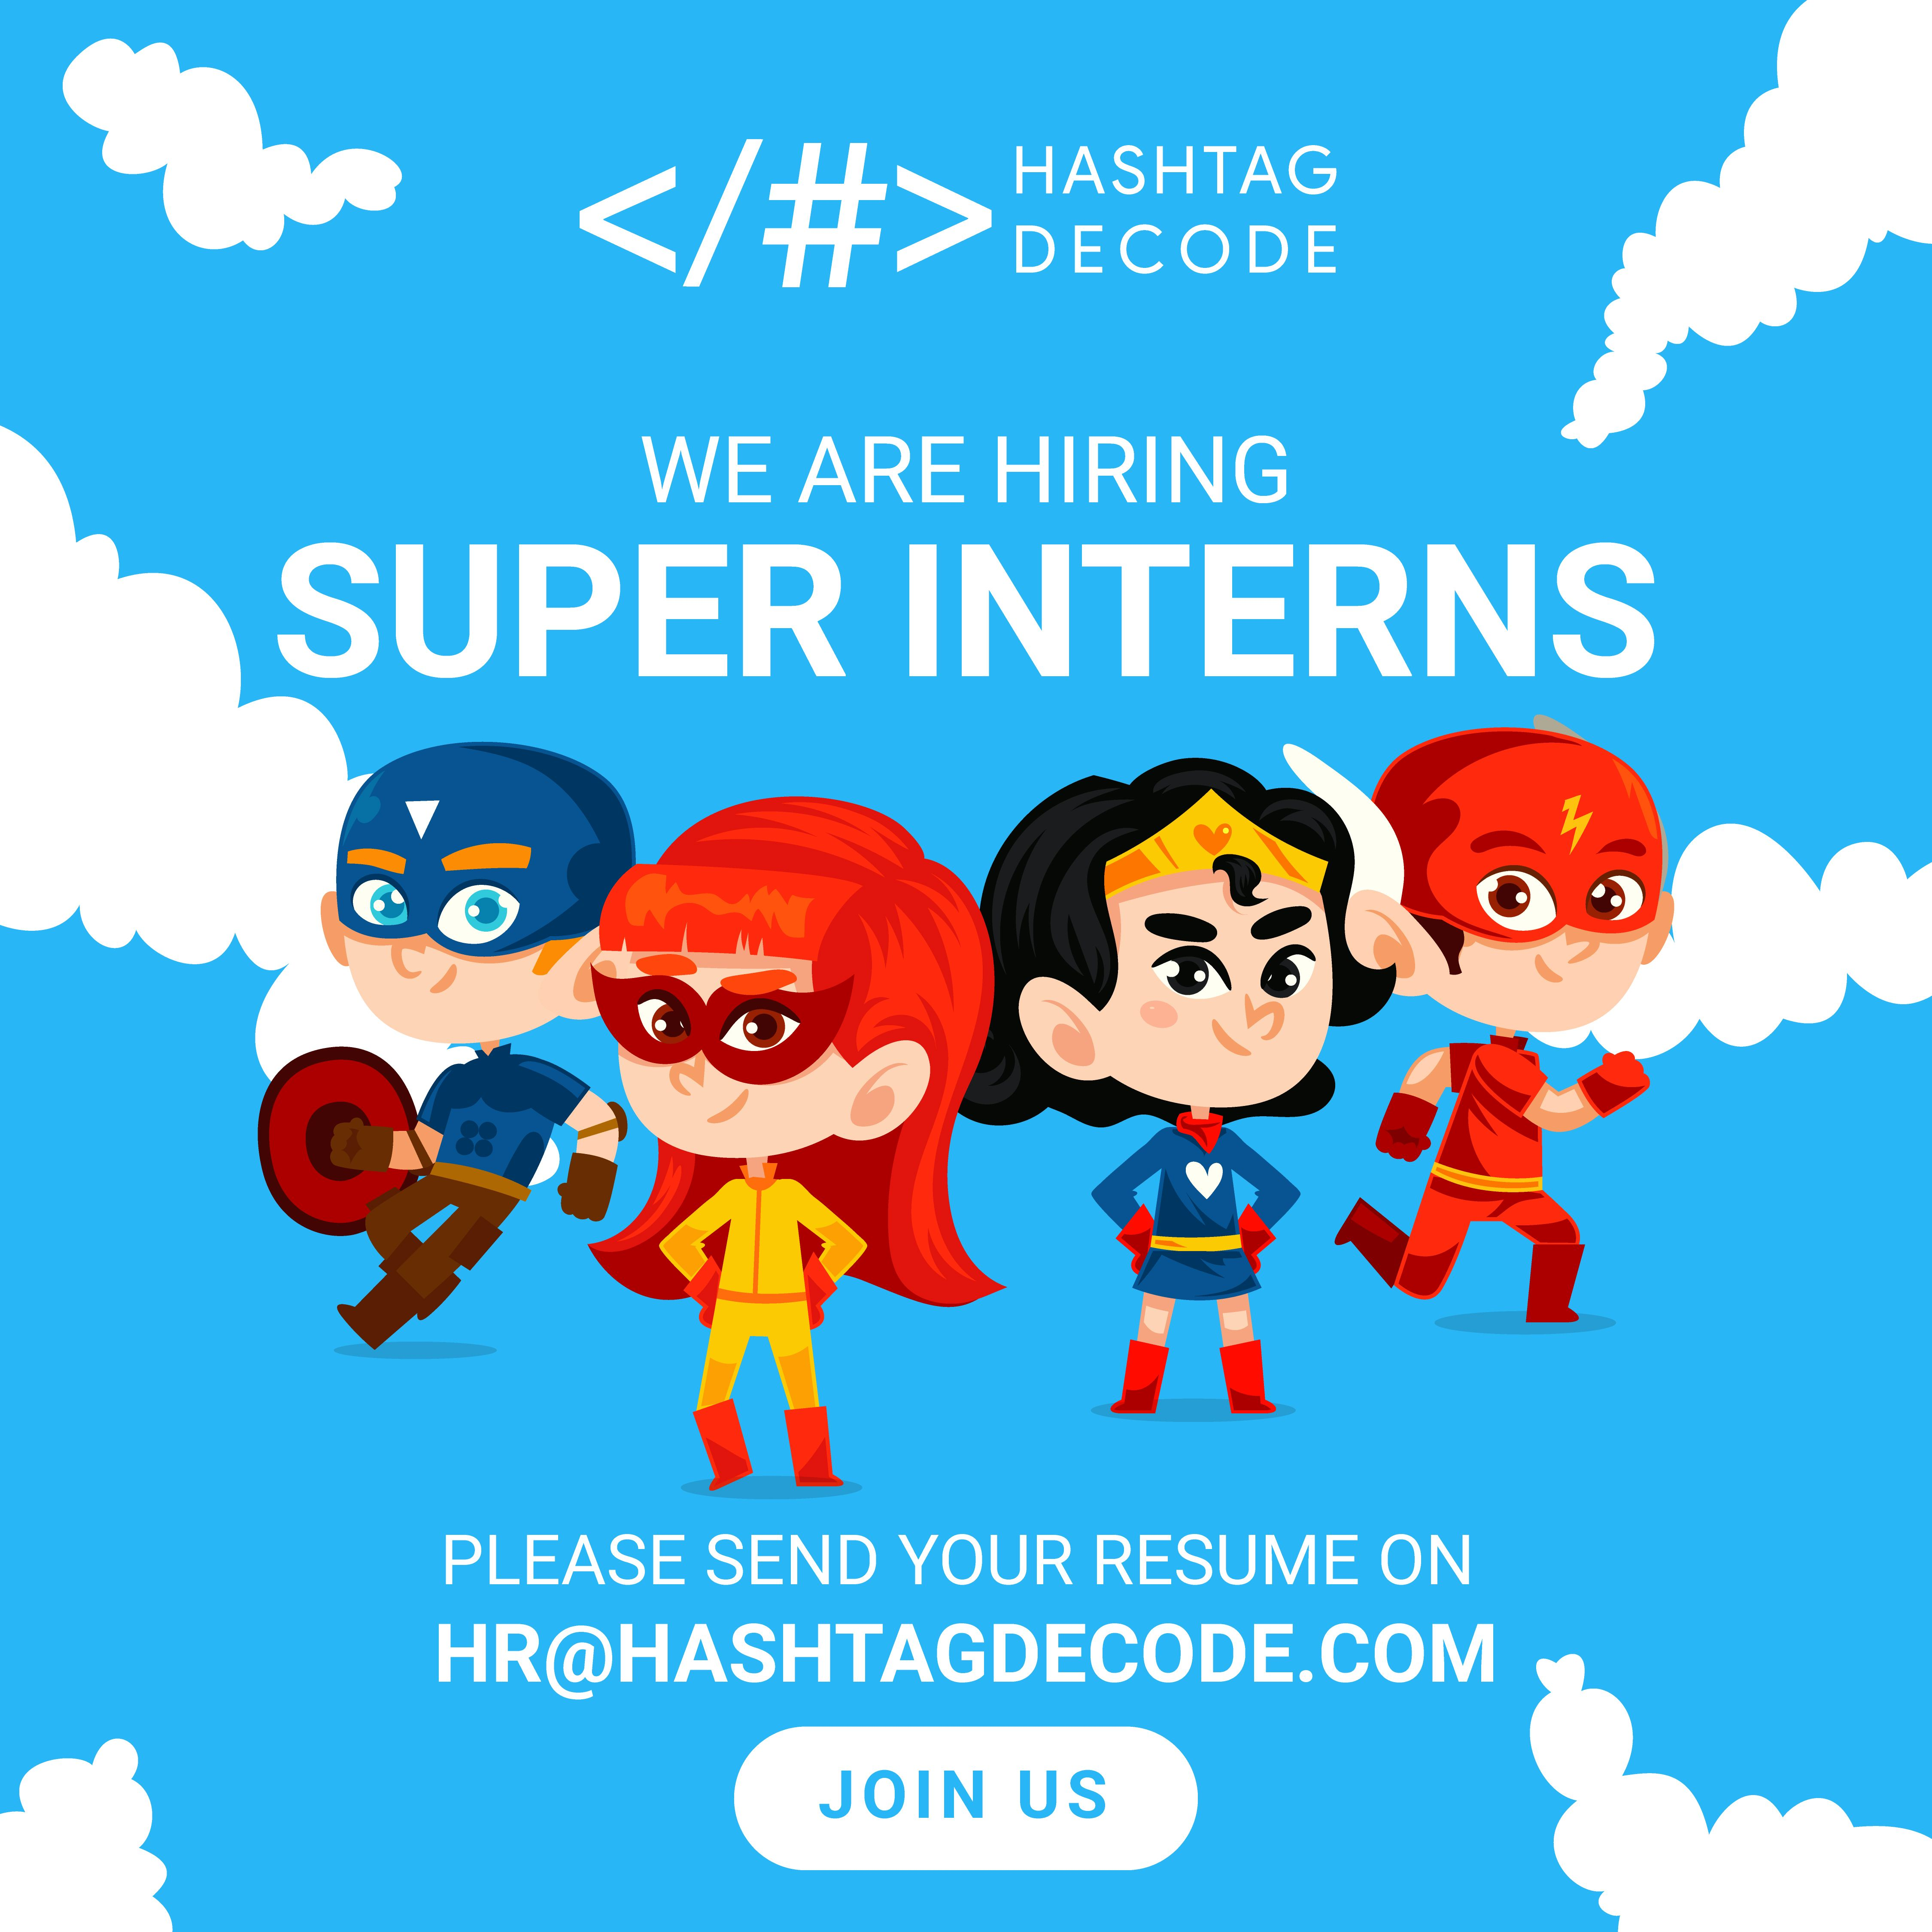 We are looking for super interns to join our core, rapidly